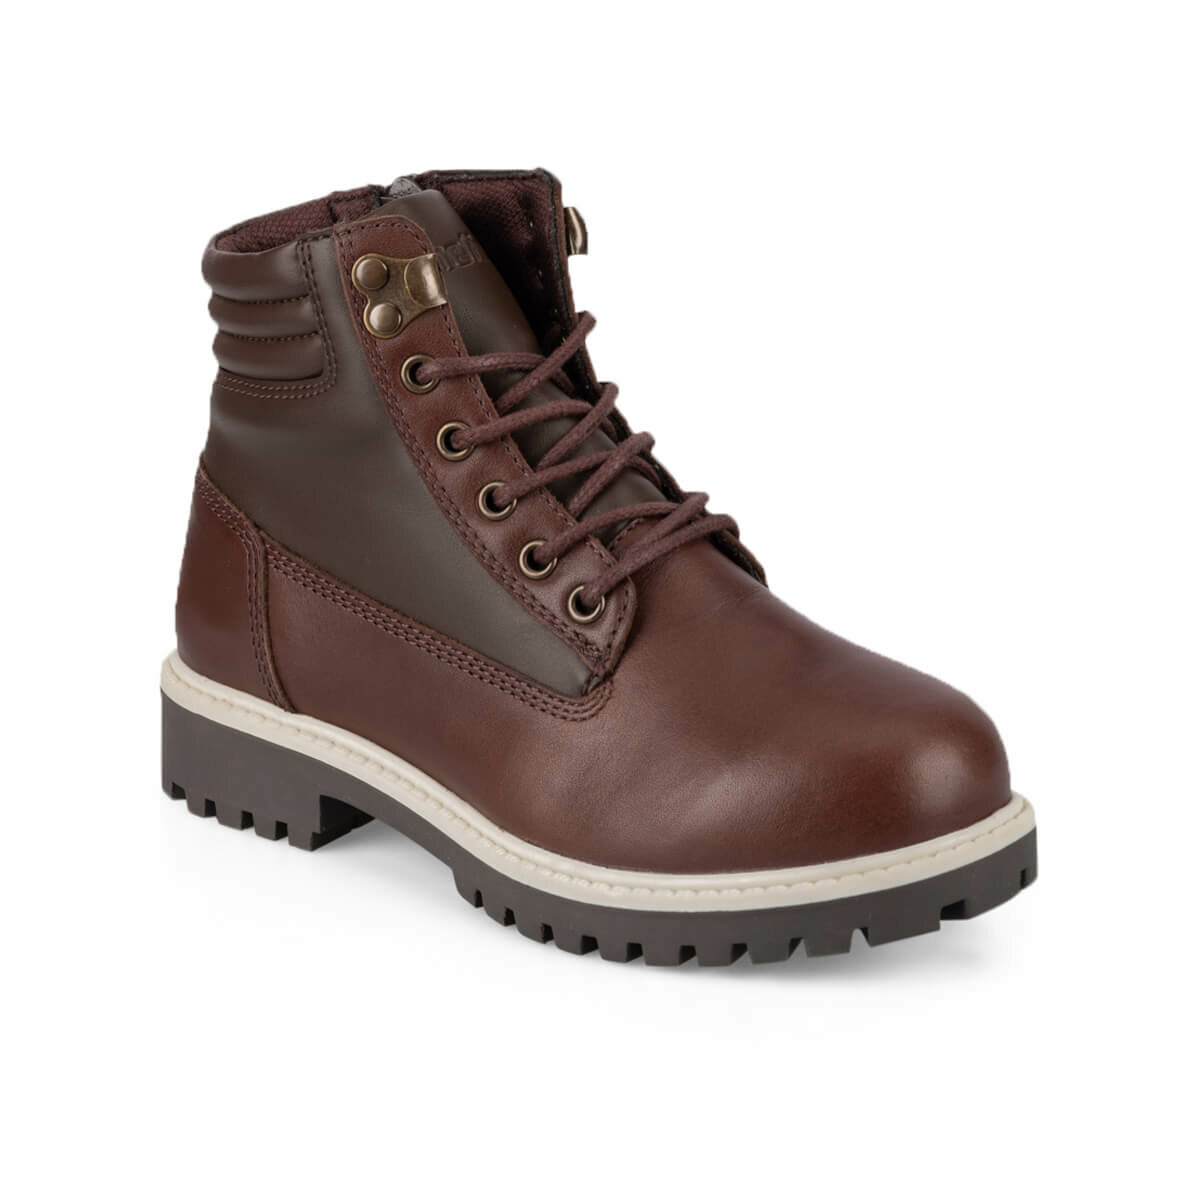 FLO GARET LEATHER 9PR Brown Male Child Boots KINETIX